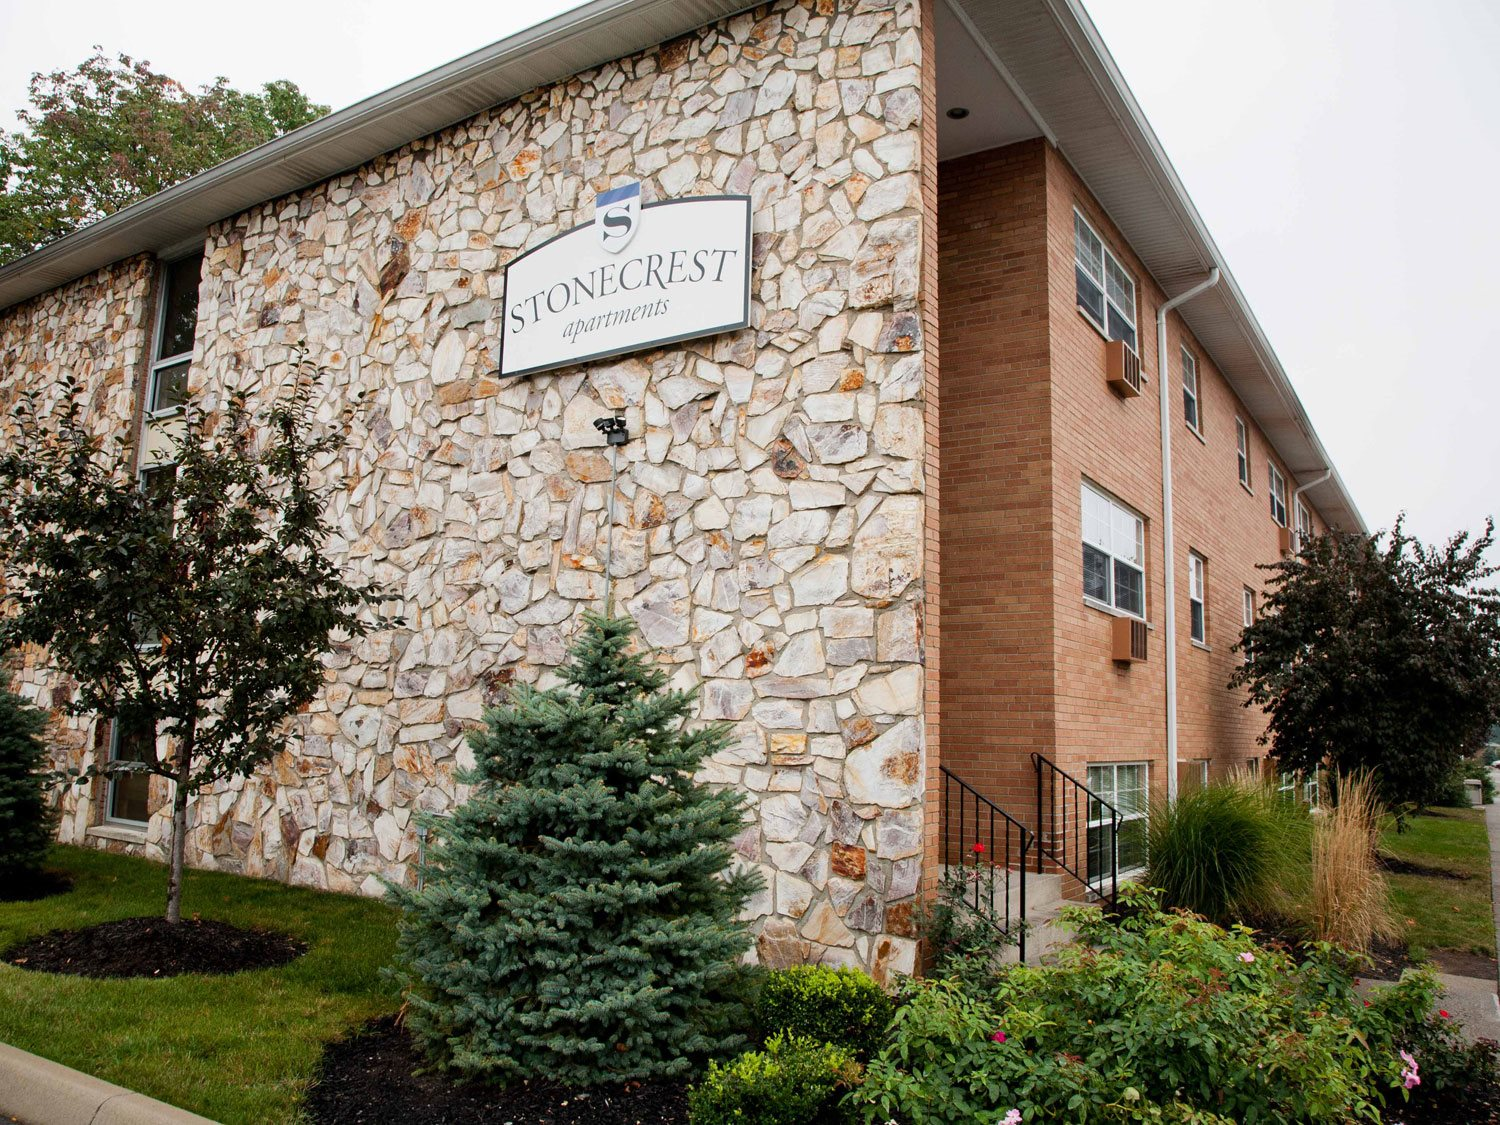 Stonecrest apartments in columbus oh for 3 bedroom apartments in westerville ohio